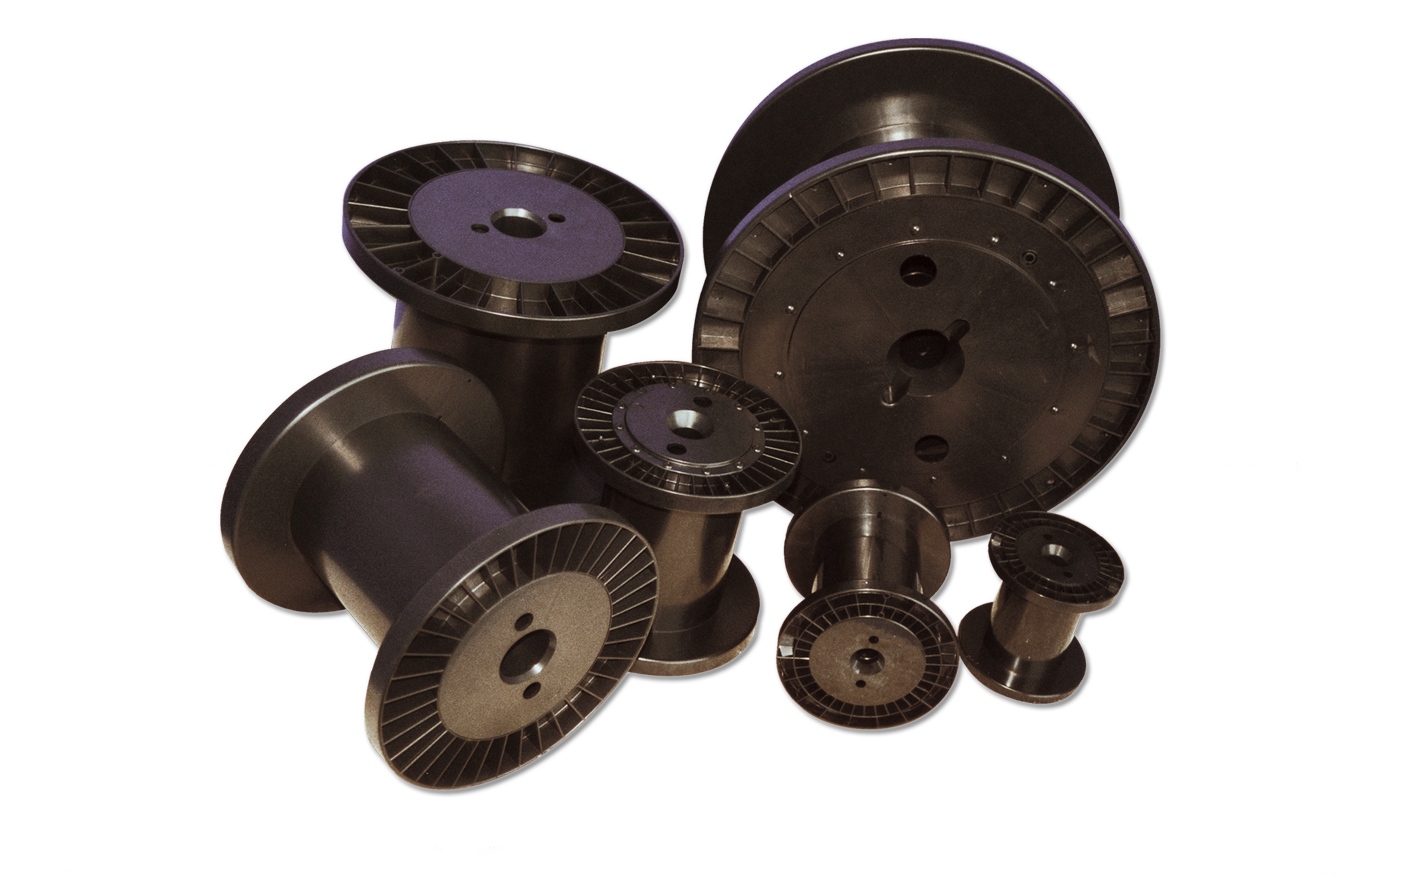 Plastic Reels and Drums Delivery Spools